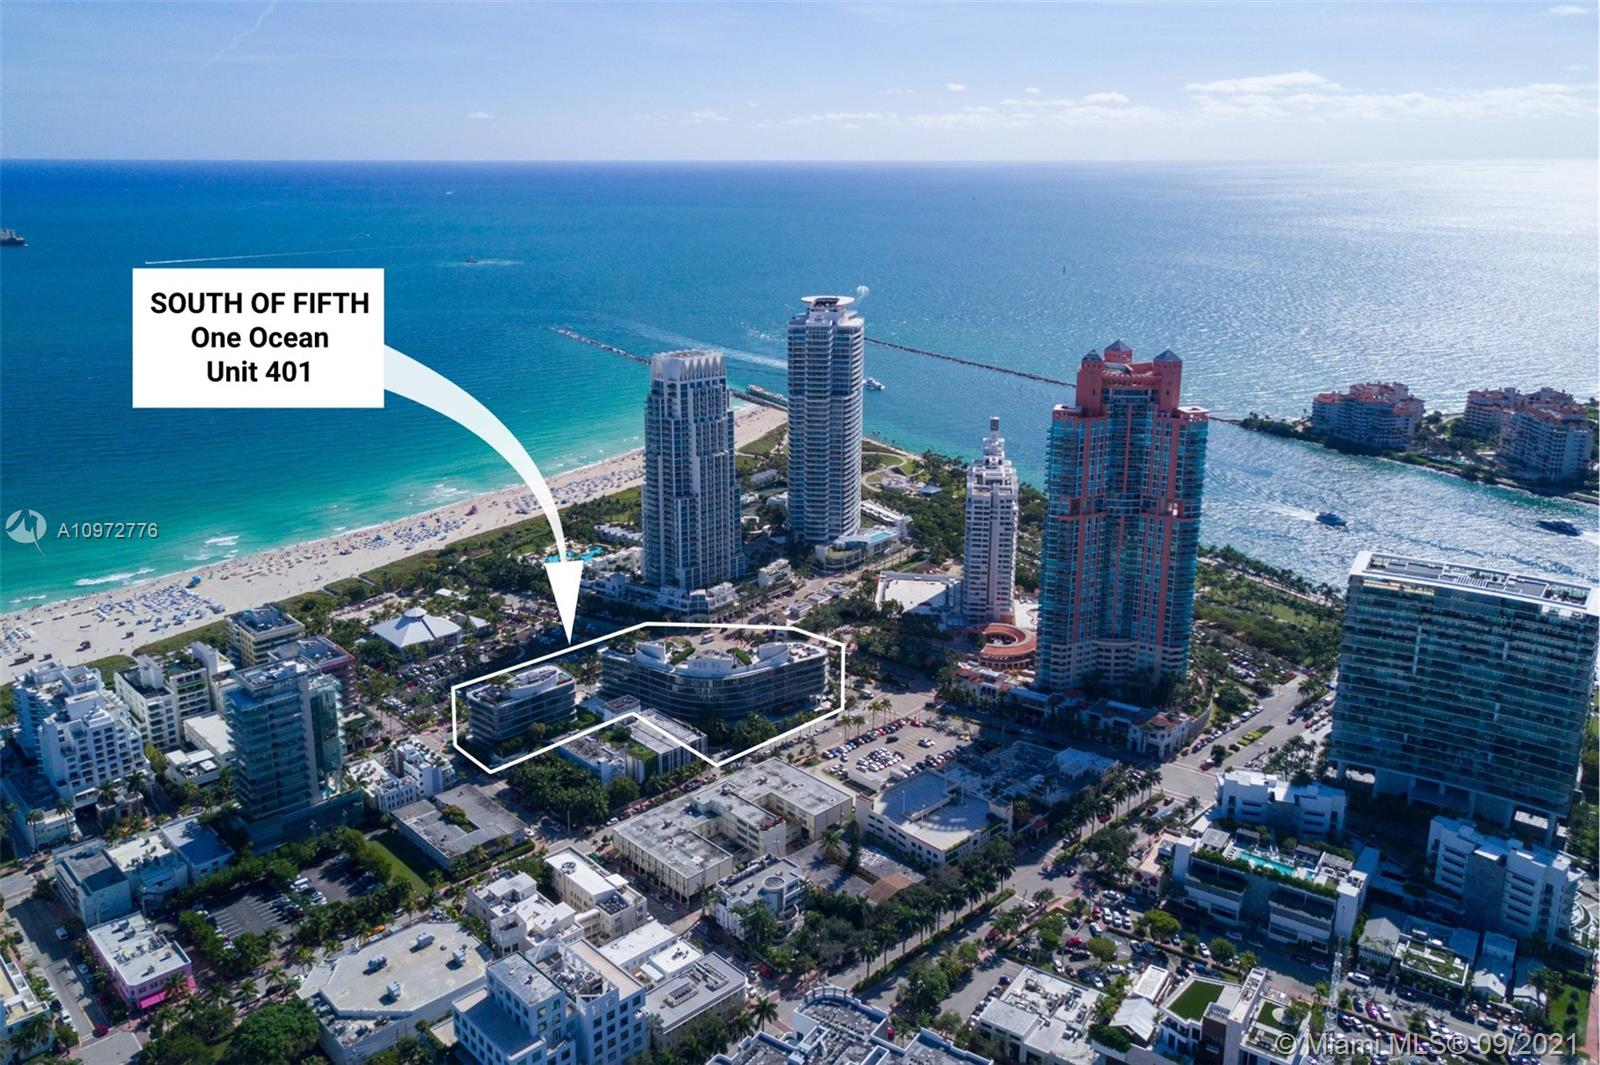 """RARE & UNIQUE 5 BEDROOM/5.5 BATH residence at One Ocean, South of 5th's Luxury Boutique Low-Rise condo! JUST ONE BLOCK FROM THE OCEAN, with ONLY 46 Premier units, residents enjoy Privacy & Exclusivity in Miami's Most Prestigious Enclave. With interiors by Yabu Pushelburg, this Beautiful & Bright SE Corner features Ocean Views, luxurious 9"""" Wide Oak Wood Floors, Floor to Ceiling glass, Electric Shades, an 856 SF Corner Terrace, Italcraft kitchen cabinetry w/ Wolf GAS STOVE & Double Oven, Private Elevator Entry Foyer, Private 2 Car Enclosed A/C Garage & so much more! Building Amenities include a VIP Concierge, Full Service Beach Club, Infinity edge pool, Fitness Center/Spa, Zen garden, & 24Hr Security & Valet. Enjoy living STEPS AWAY from South of Fifth's World Class Dining & Entertainment!"""